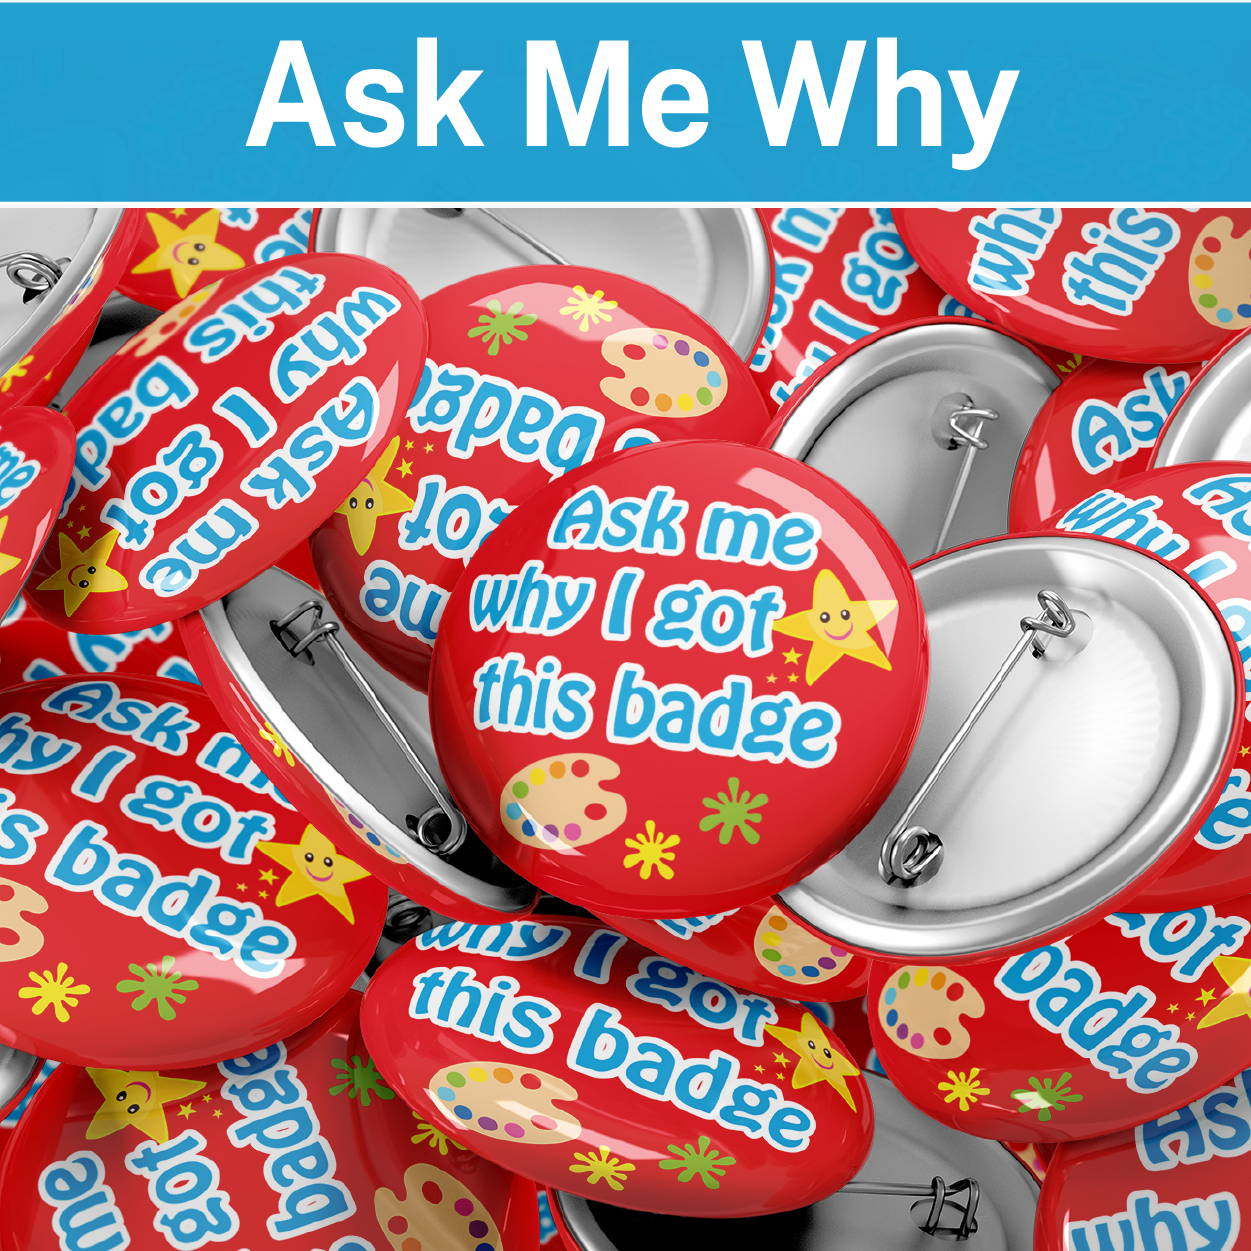 Ask me why badges